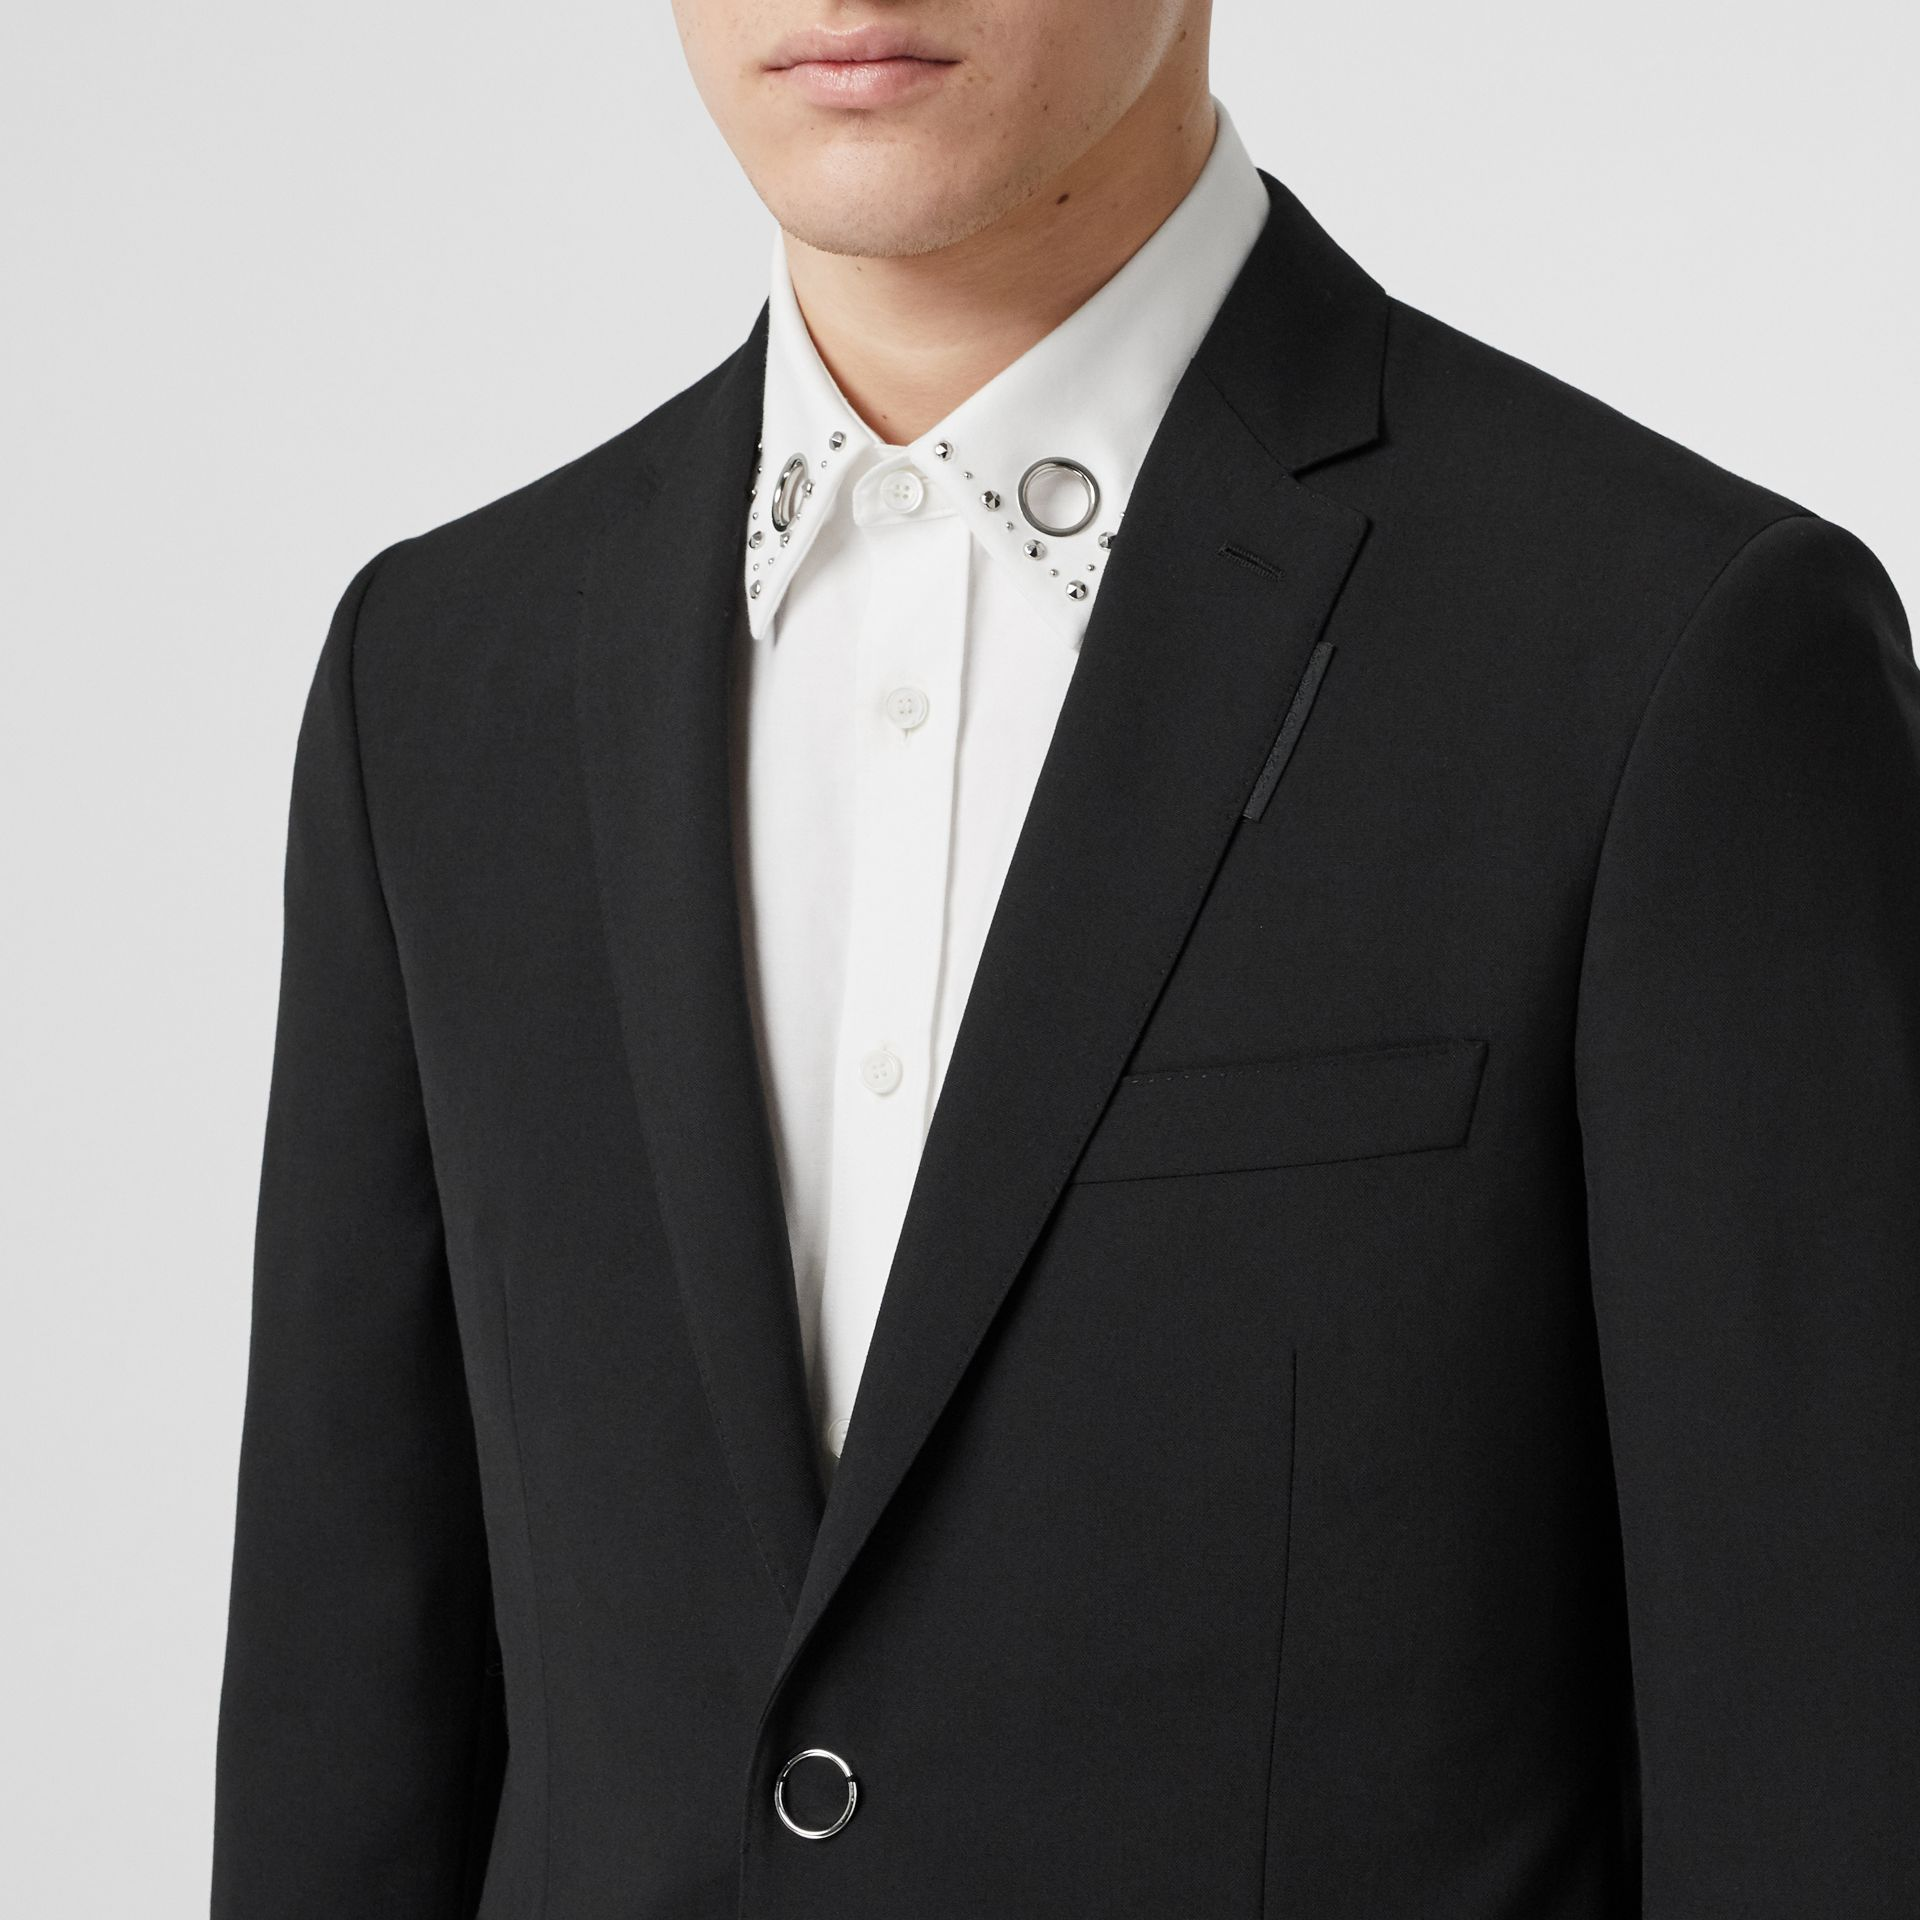 Slim Fit Press-stud Tumbled Wool Tailored Jacket in Black - Men | Burberry Hong Kong S.A.R - gallery image 1